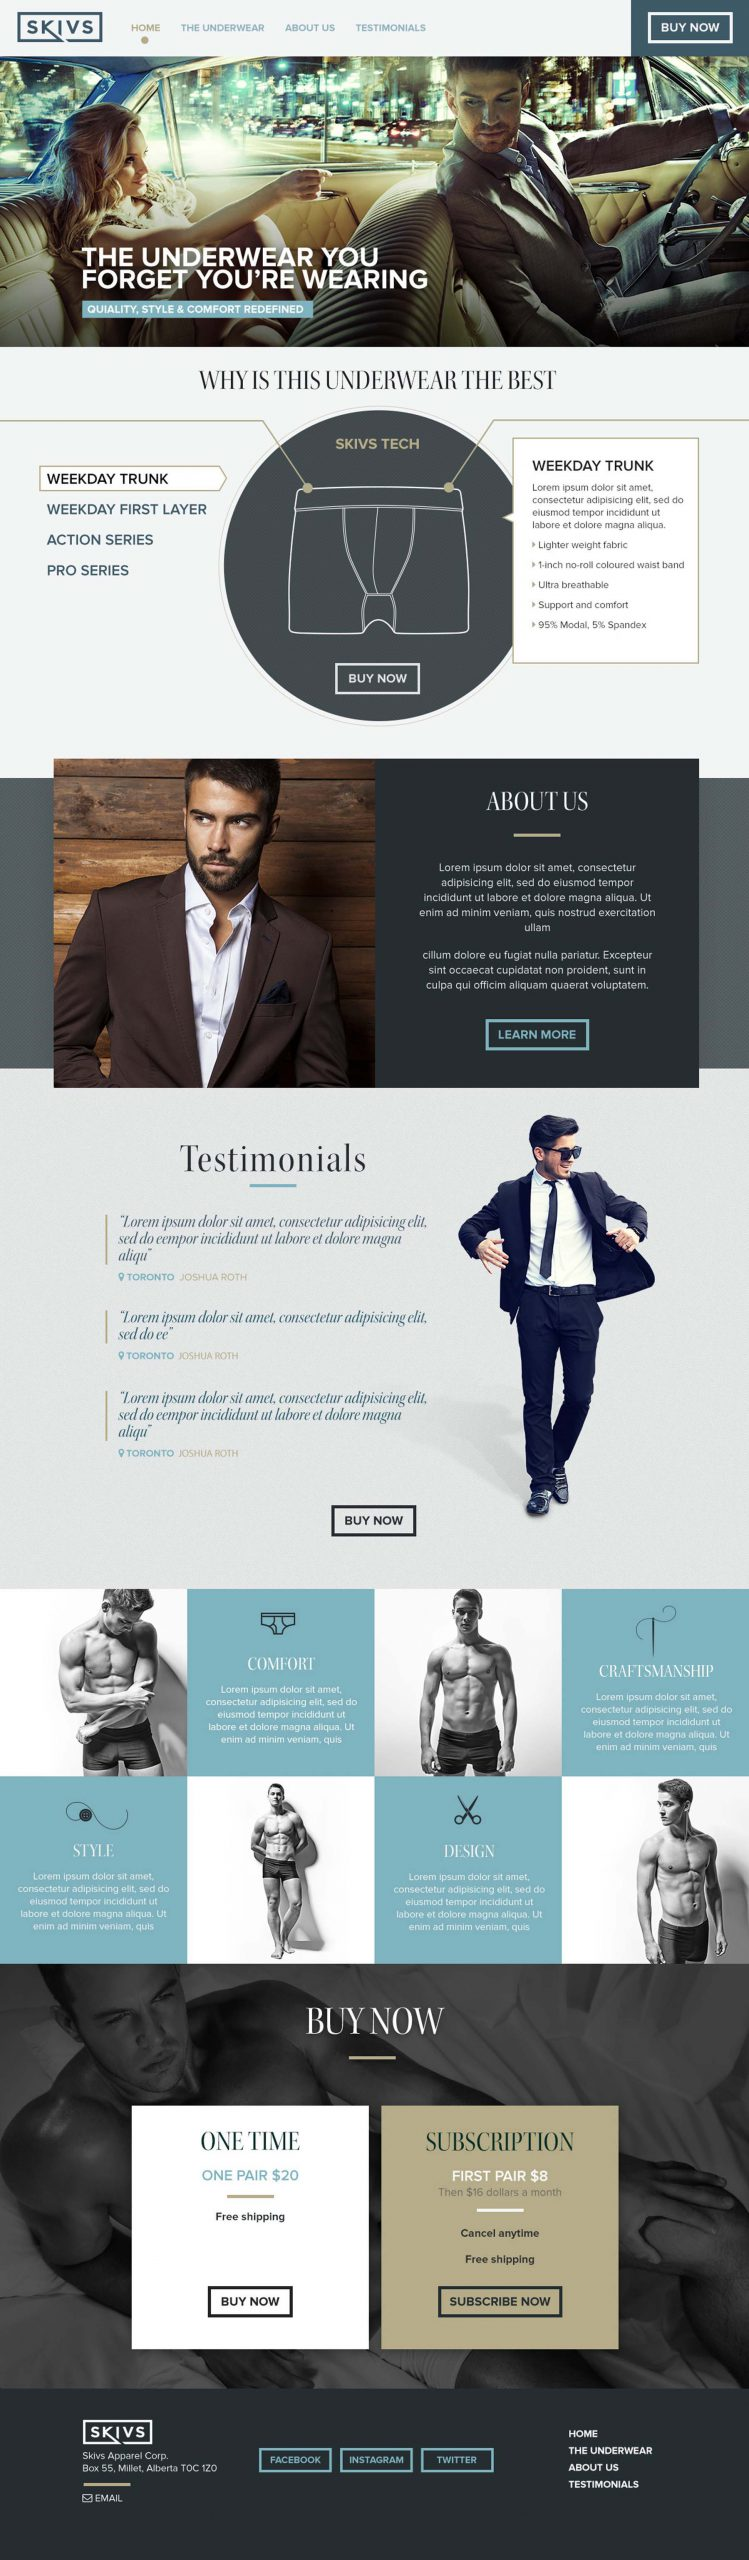 SKIVS fashion website design